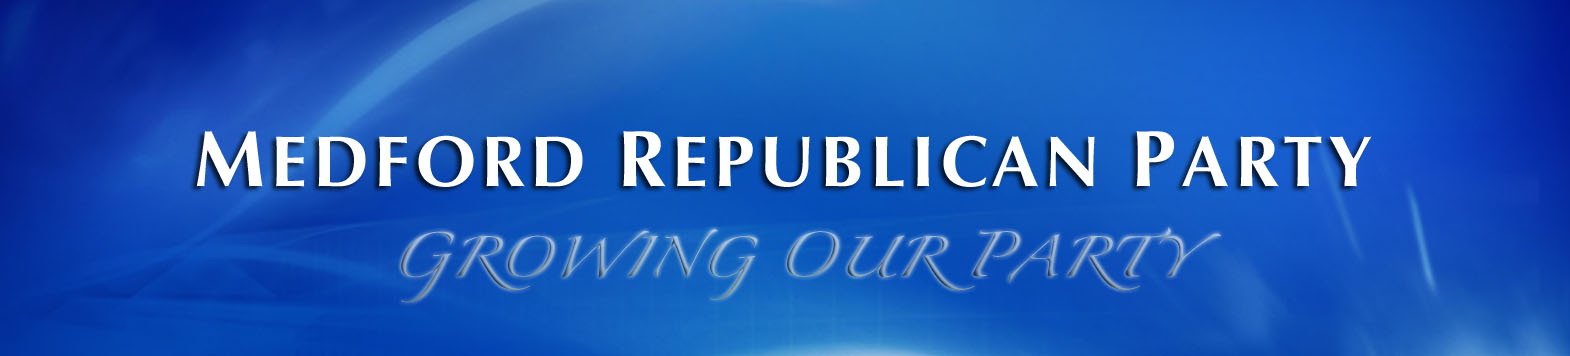 The Medford Republican Party